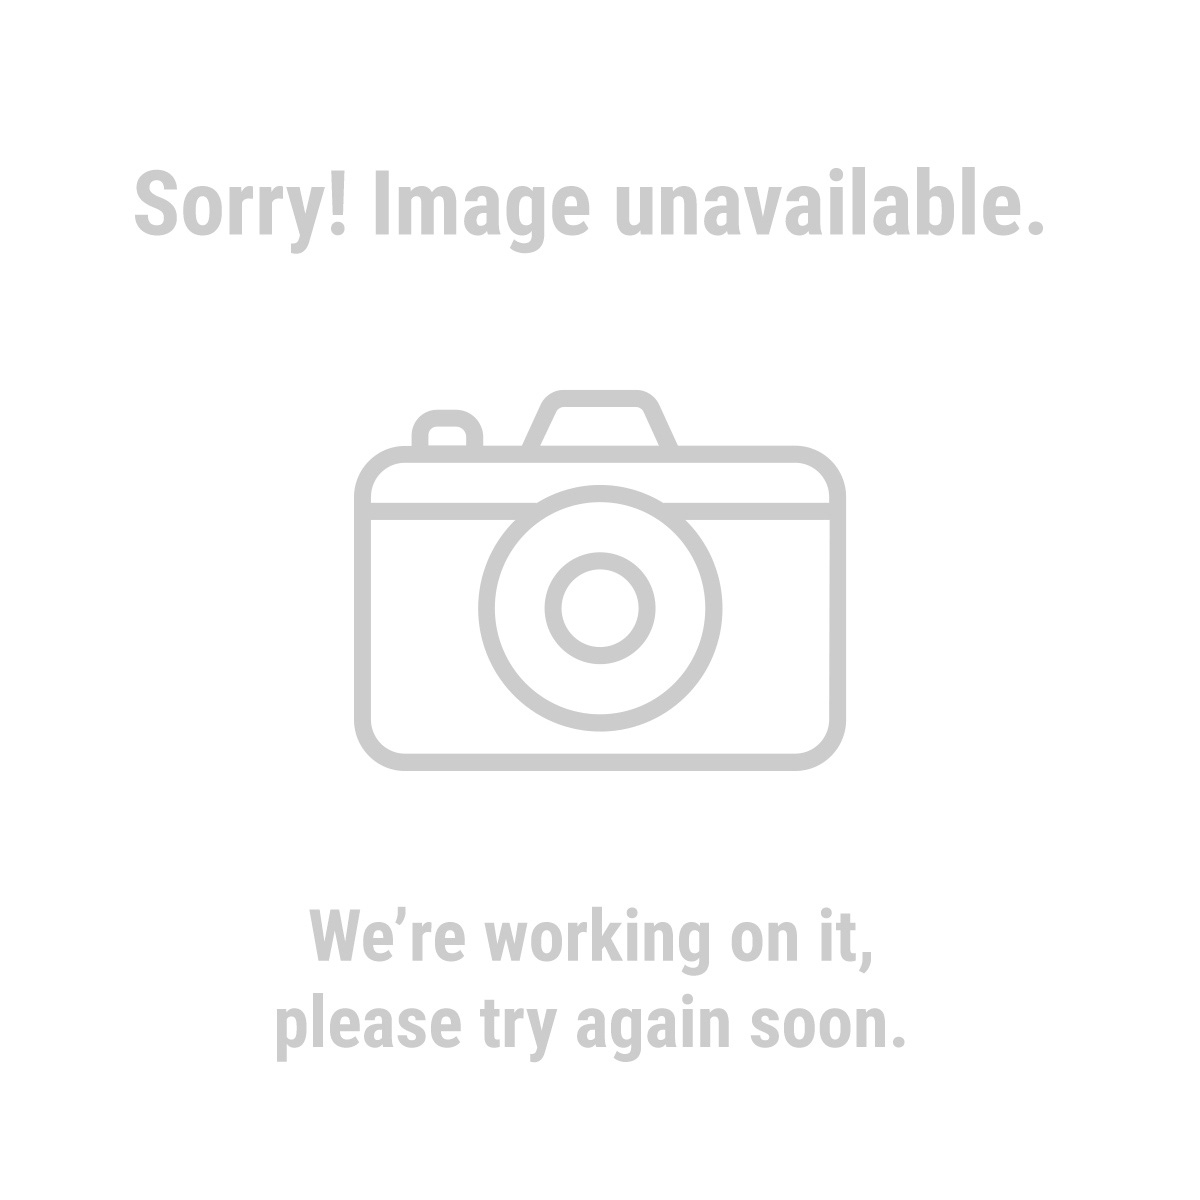 Pittsburgh 61903 1/2 in. Drive 12 Point Metric Deep Wall Impact Socket Set 13 Pc